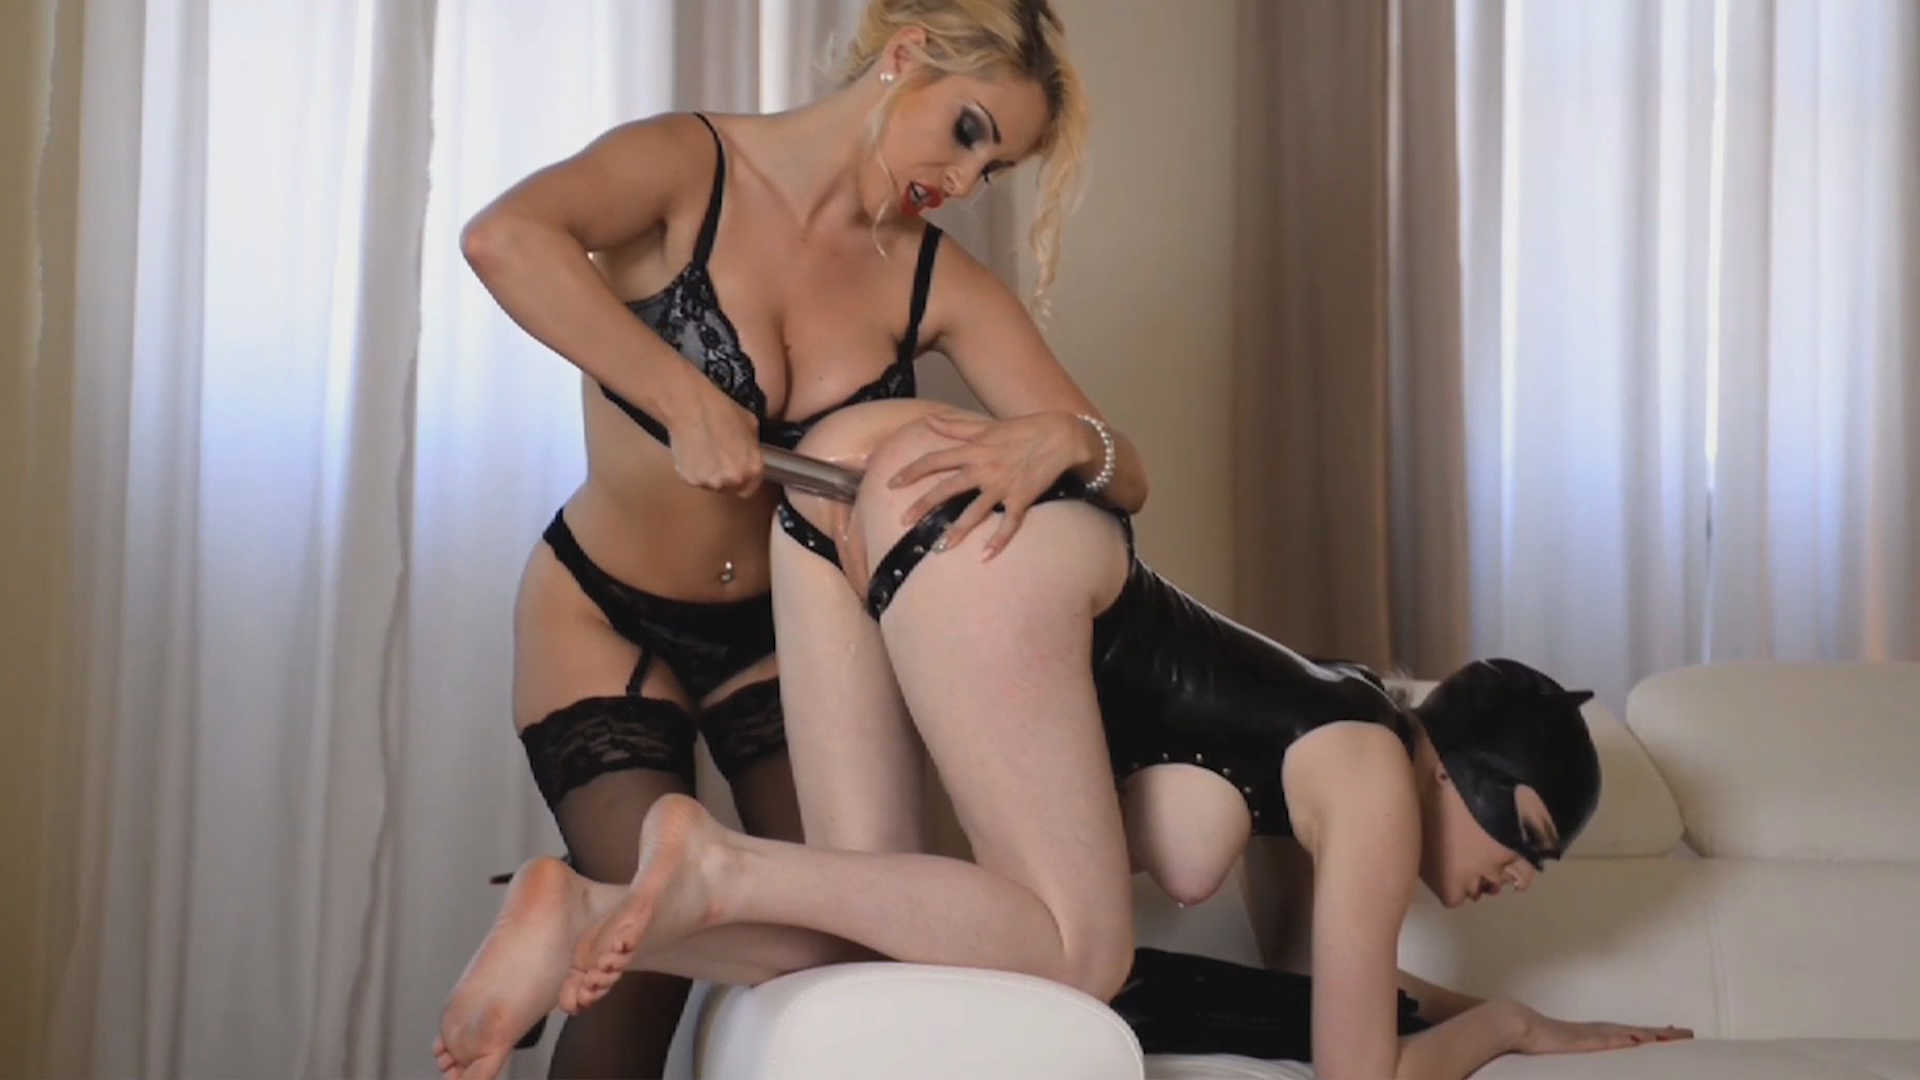 Kinky Fetish Models xvideos193072